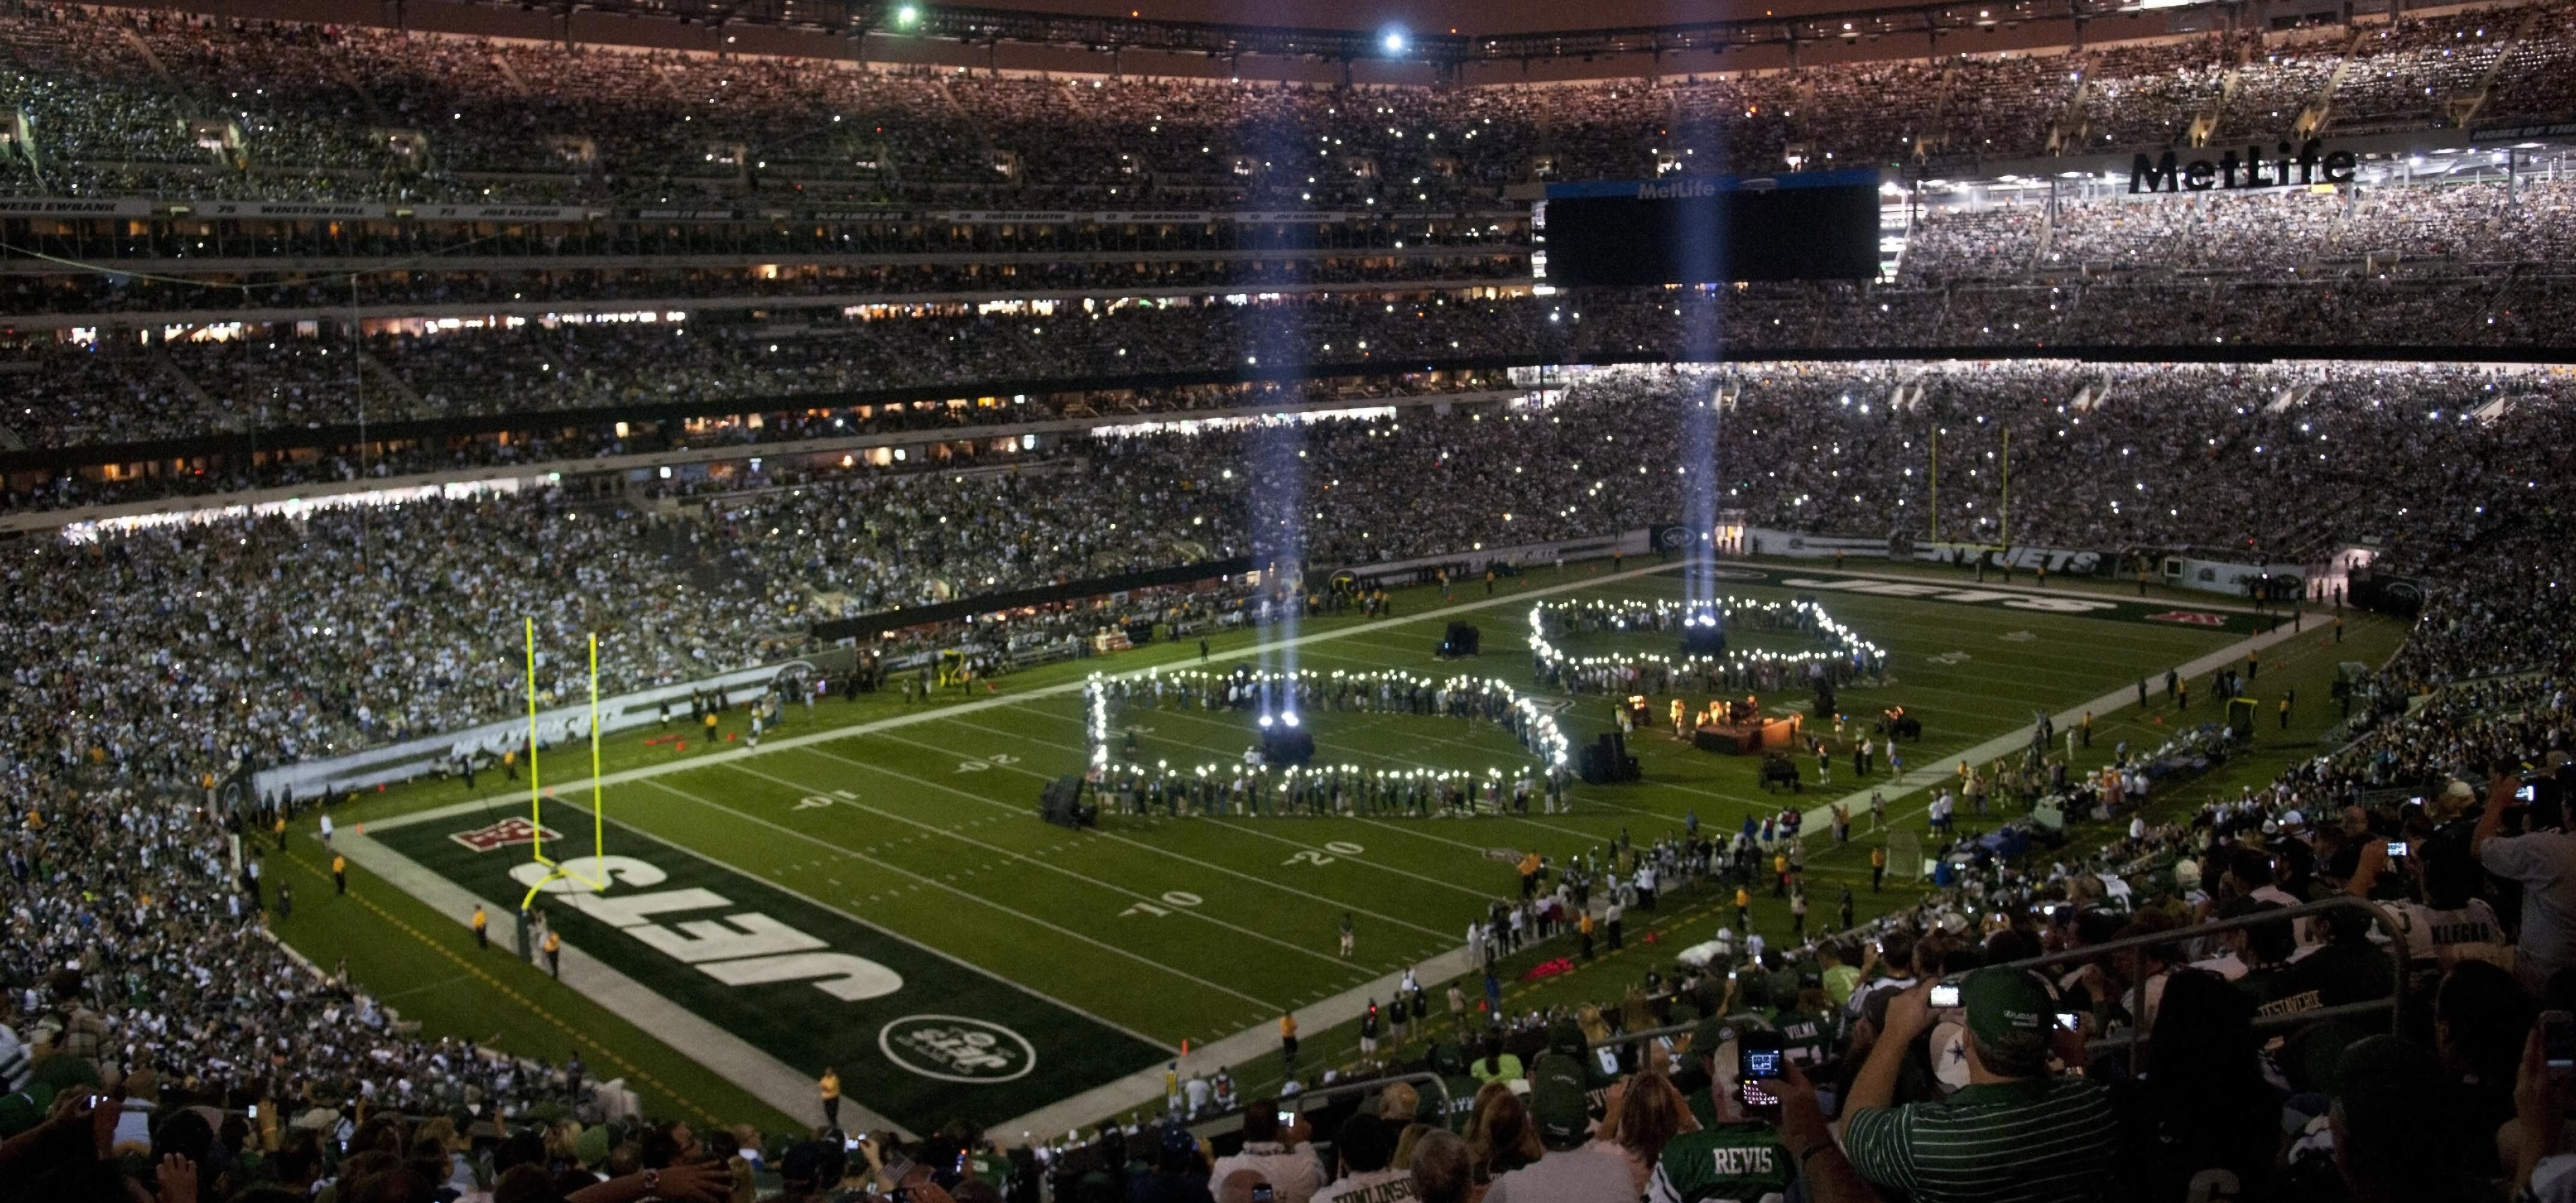 Options for a Stage Rental in NYC